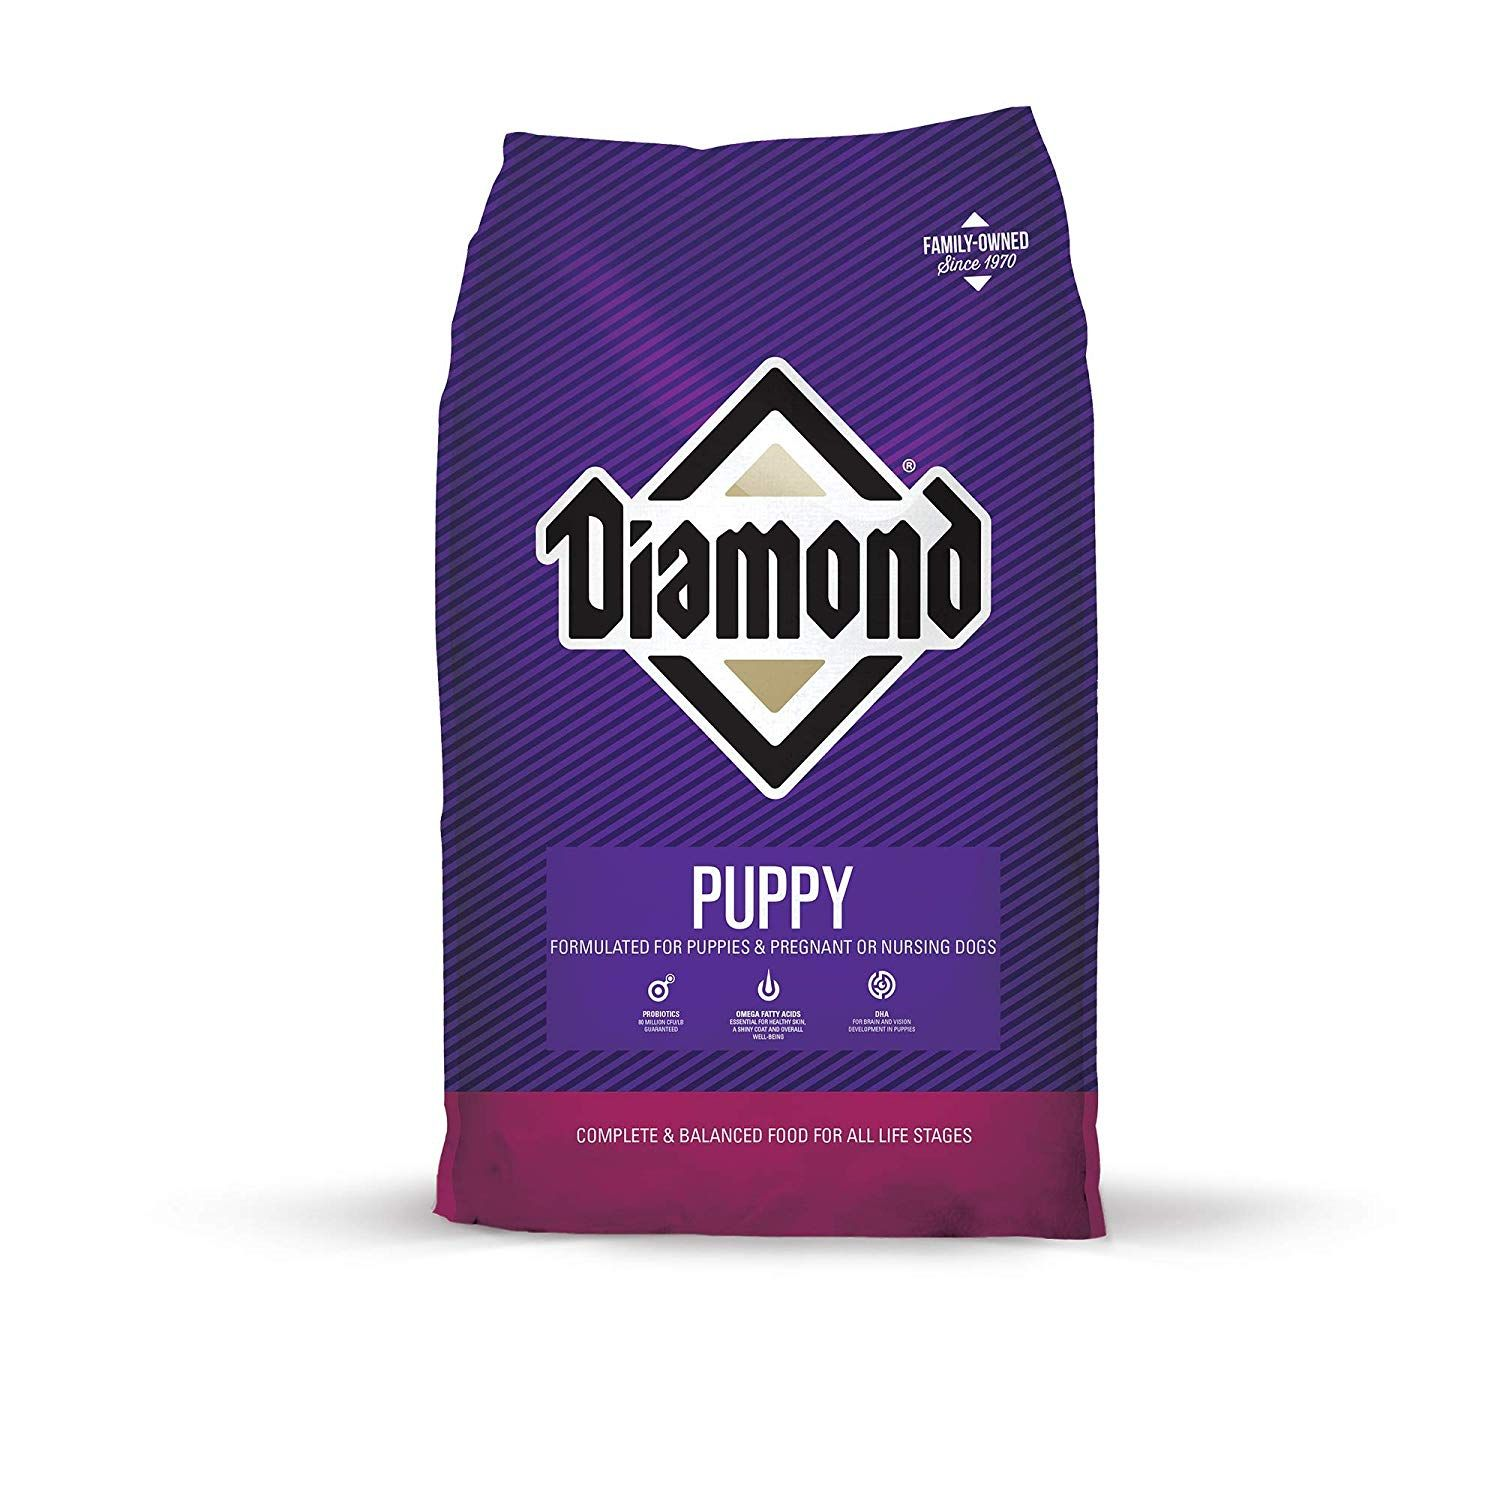 Pin By Lola Shop On Pet Supplies In 2020 Dry Dog Food Puppy Formula Dog Food Recipes